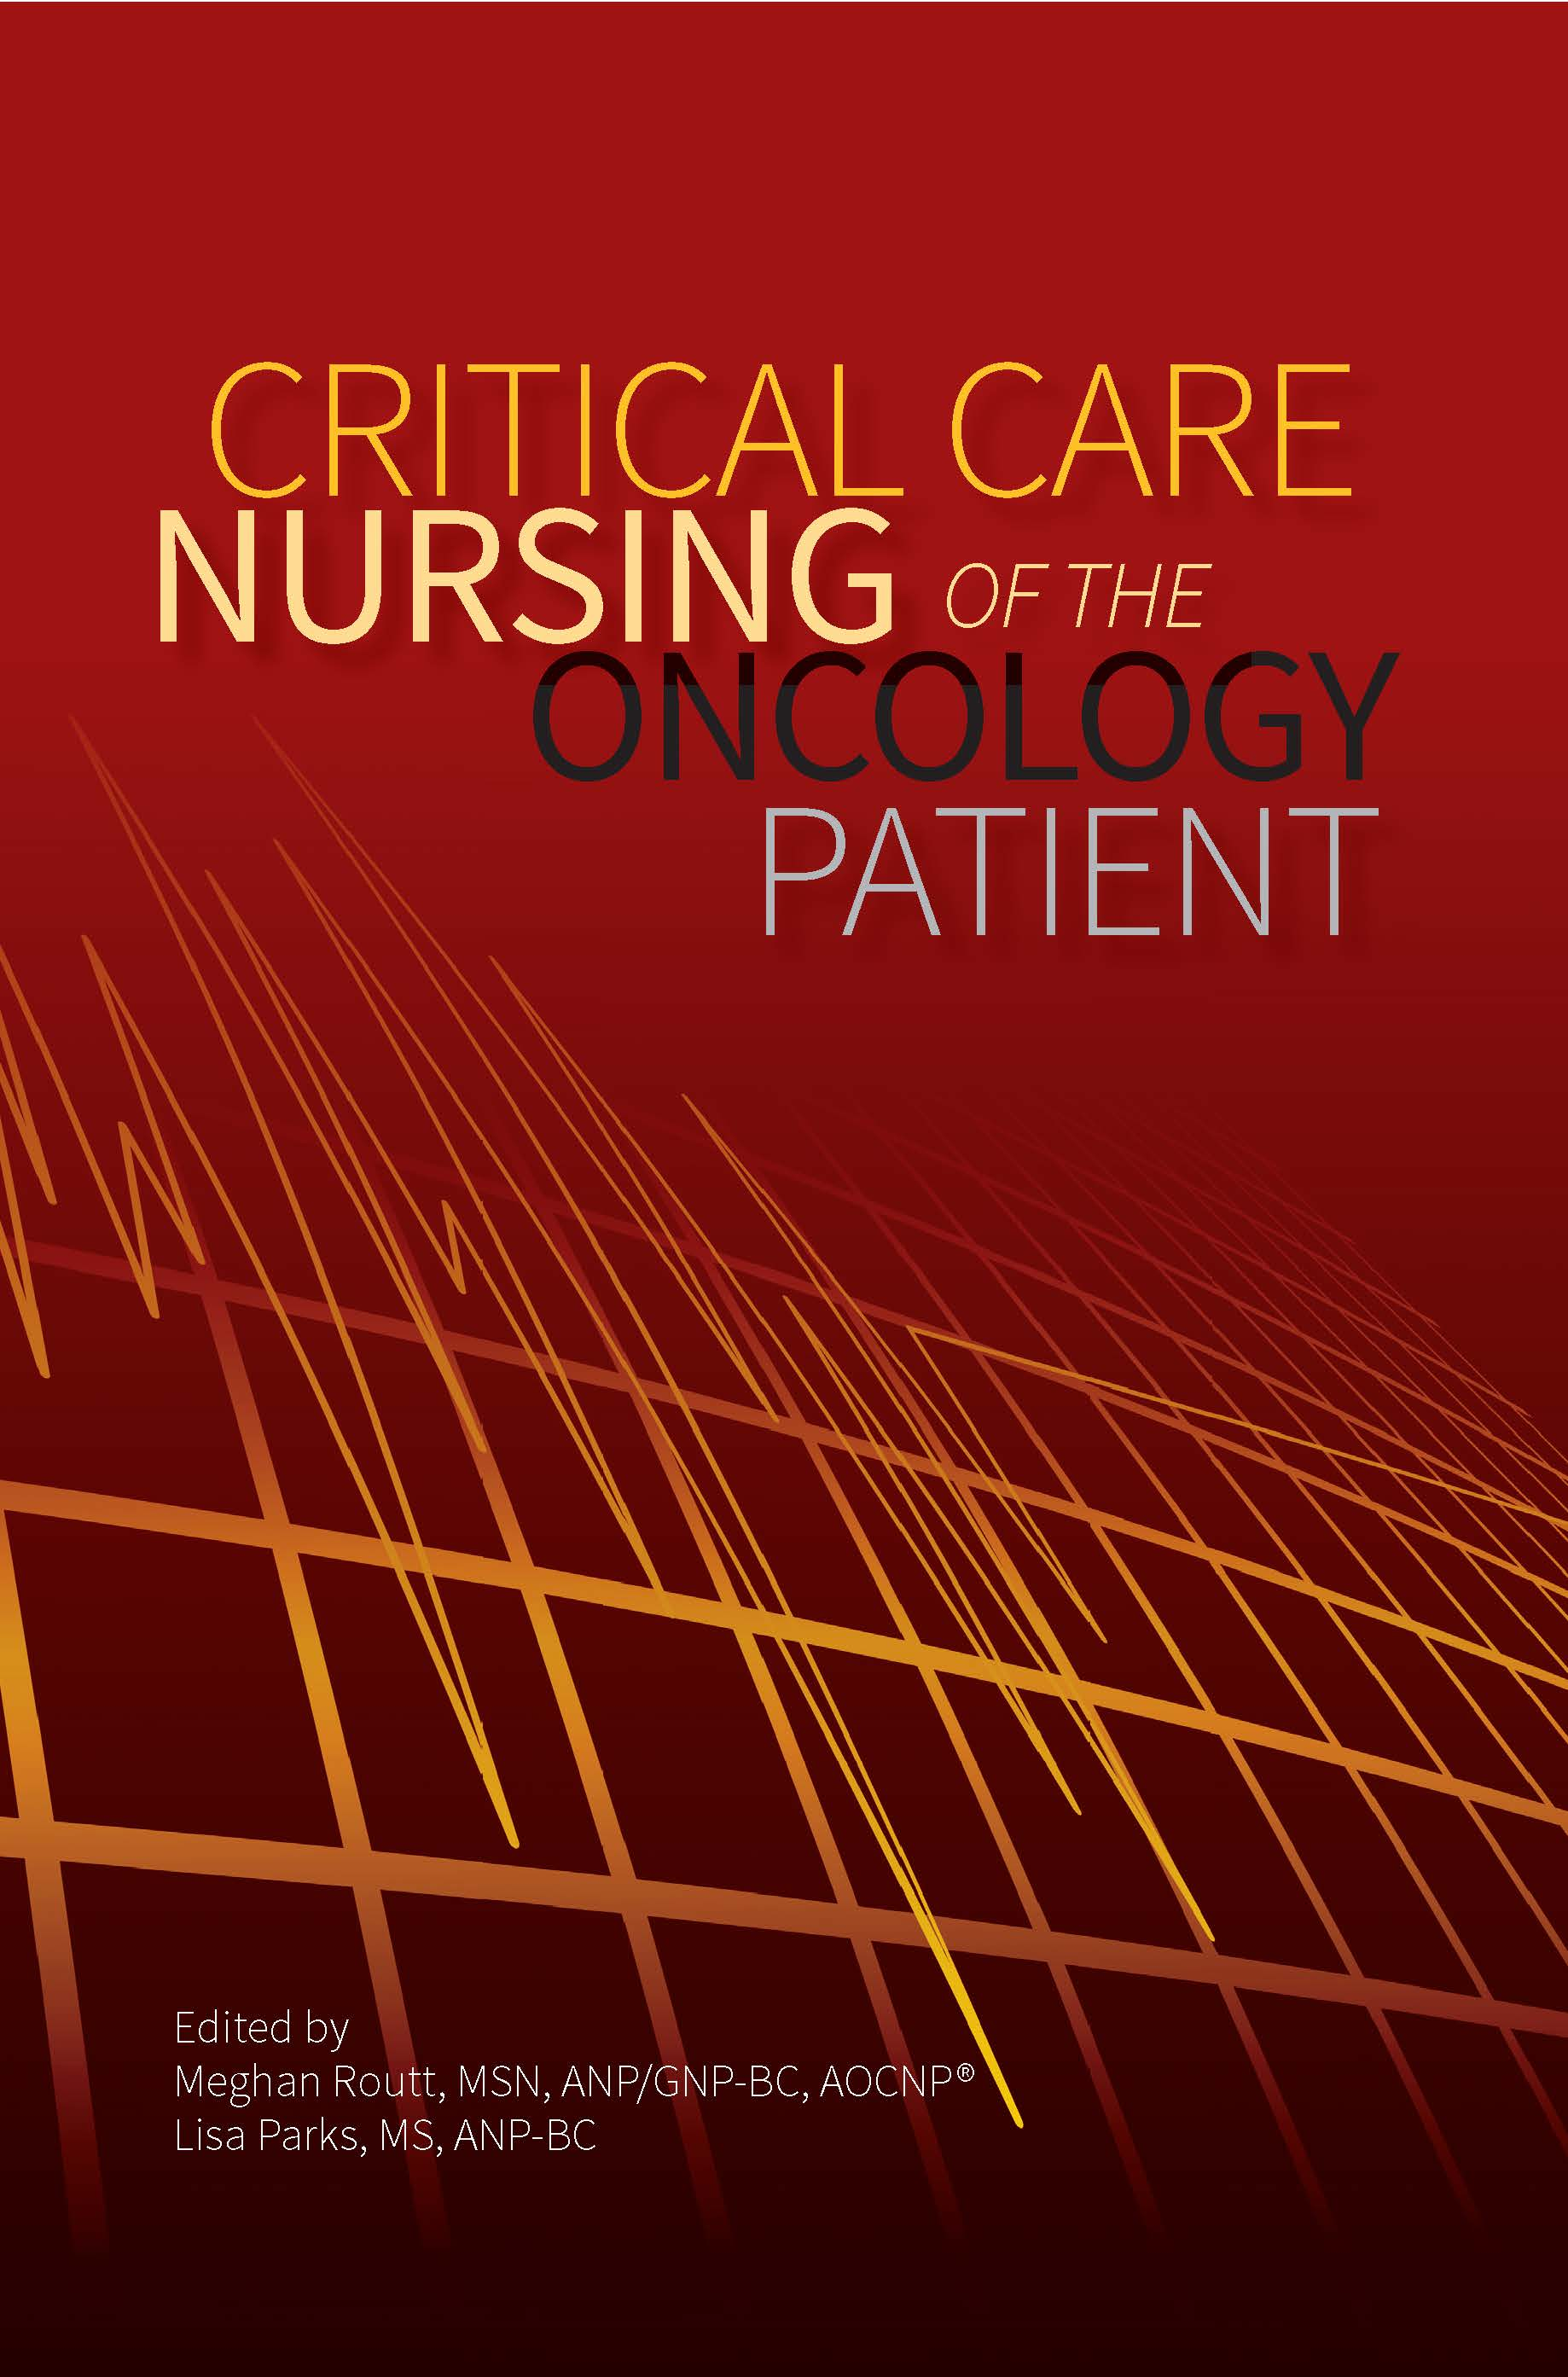 Critical Care Nursing of the Oncology Patient